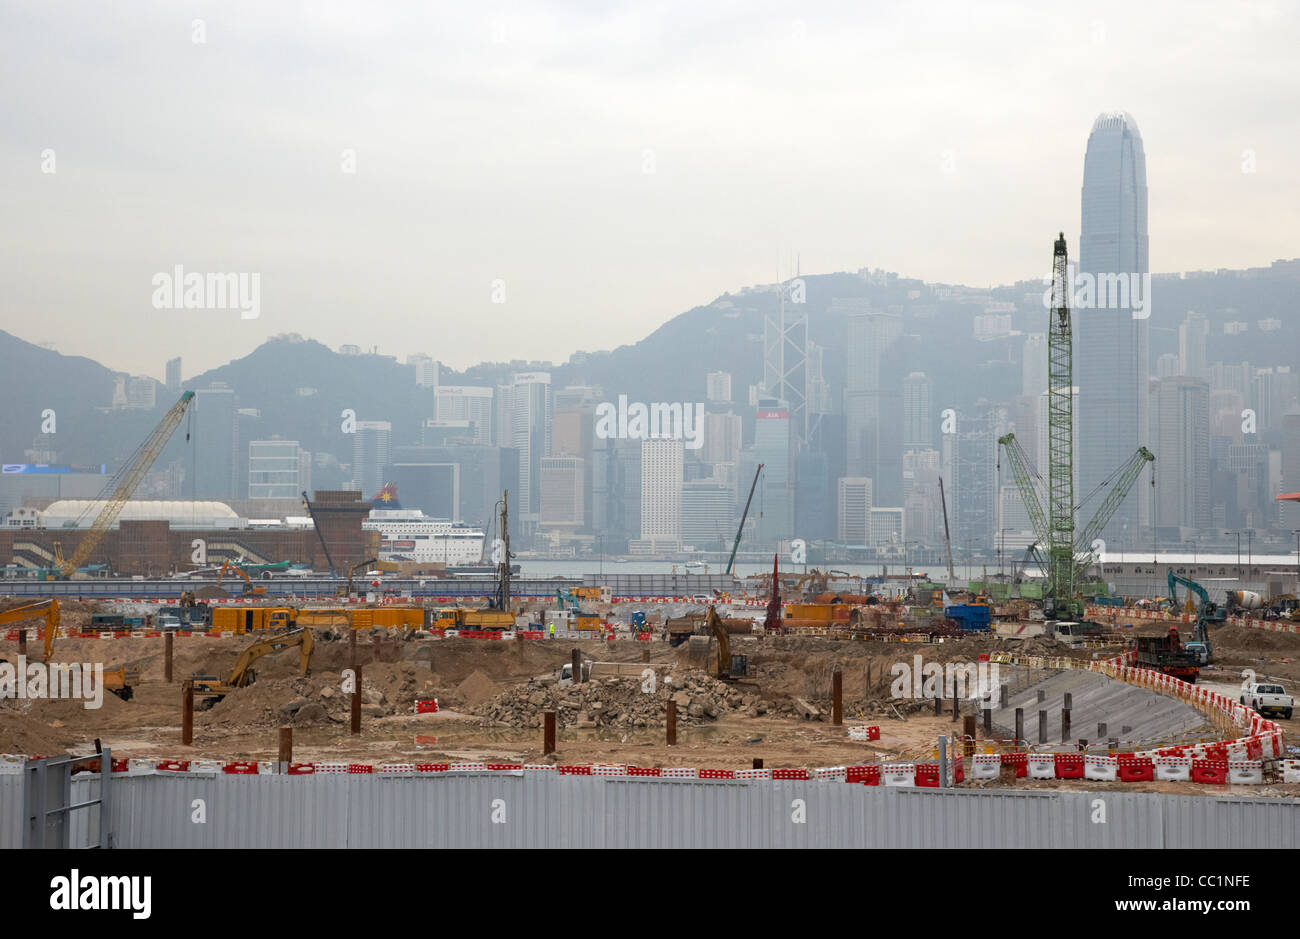 new building site and the coronation development under construction on reclaimed land in west kowloon with a view - Stock Image